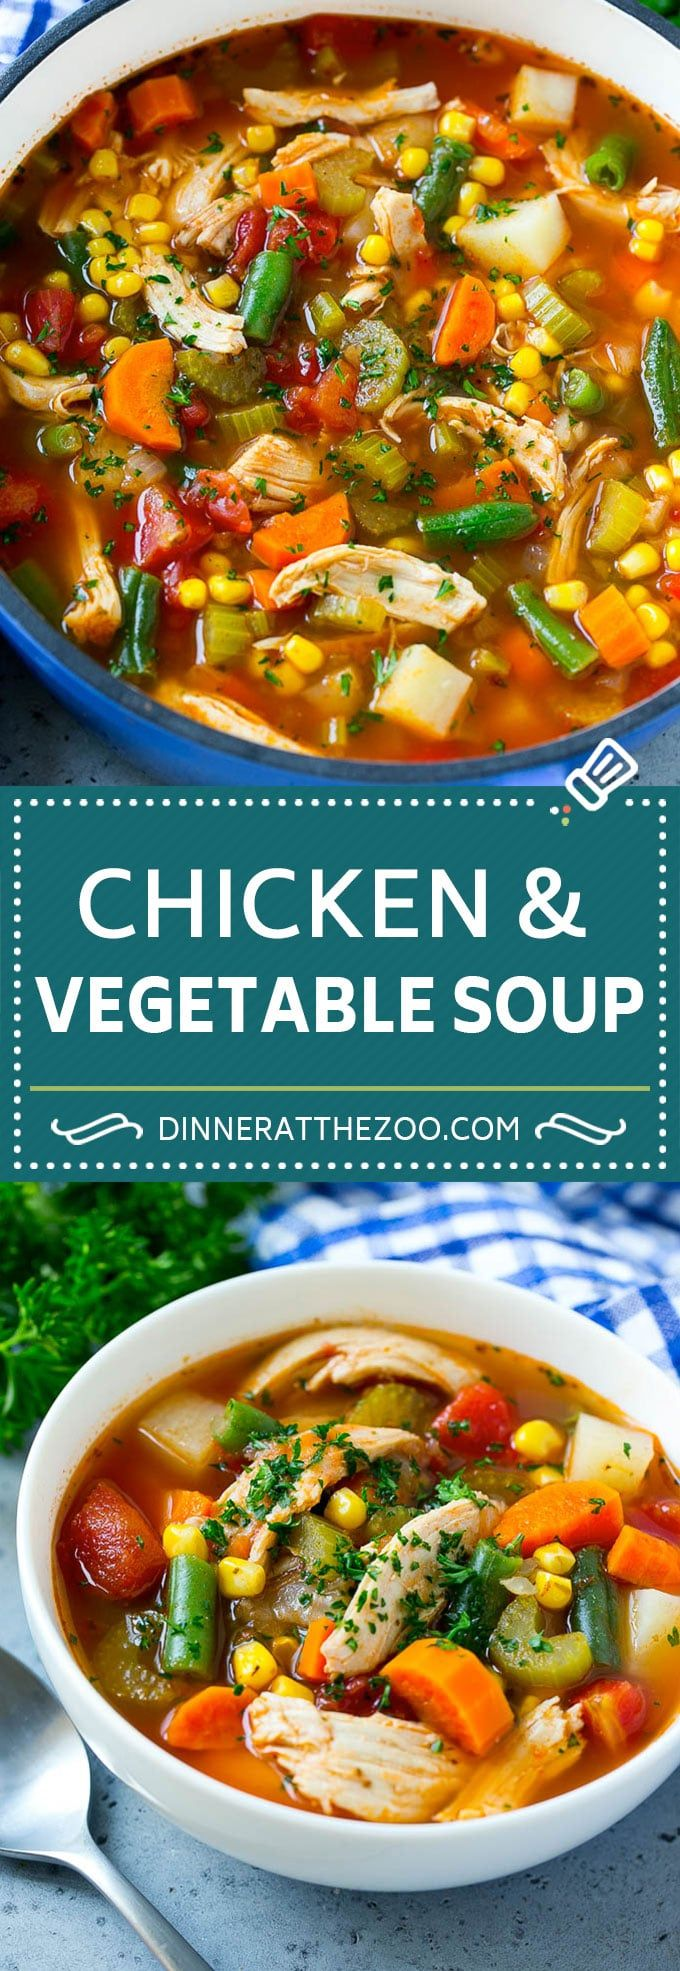 Chicken Vegetable Soup Recipe | Chicken Soup | Healthy Soup | Vegetable Soup #ch…